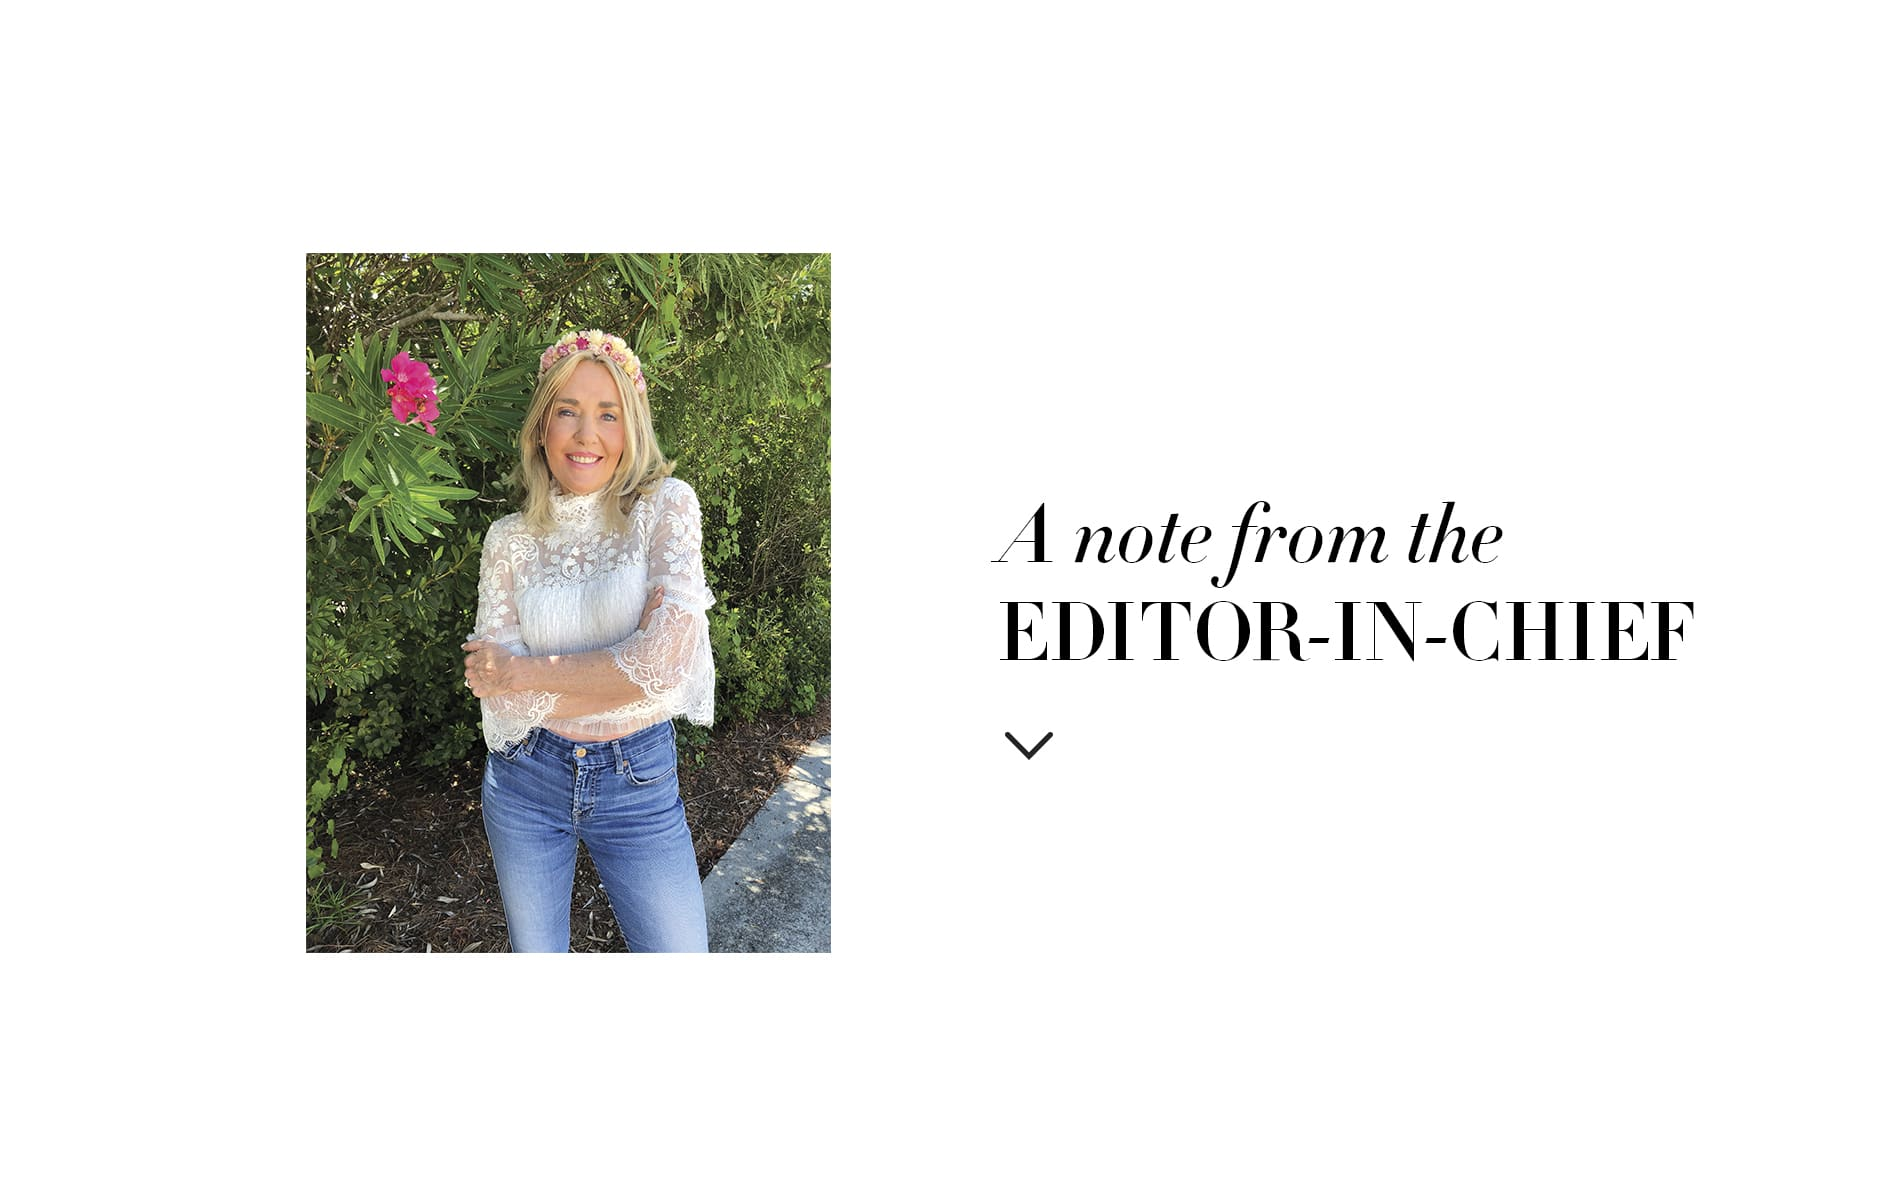 VIE Magazine, The Idea Boutique, Lisa Burwell, Lisa Marie Burwell, Editors Note, Editor in Chief note